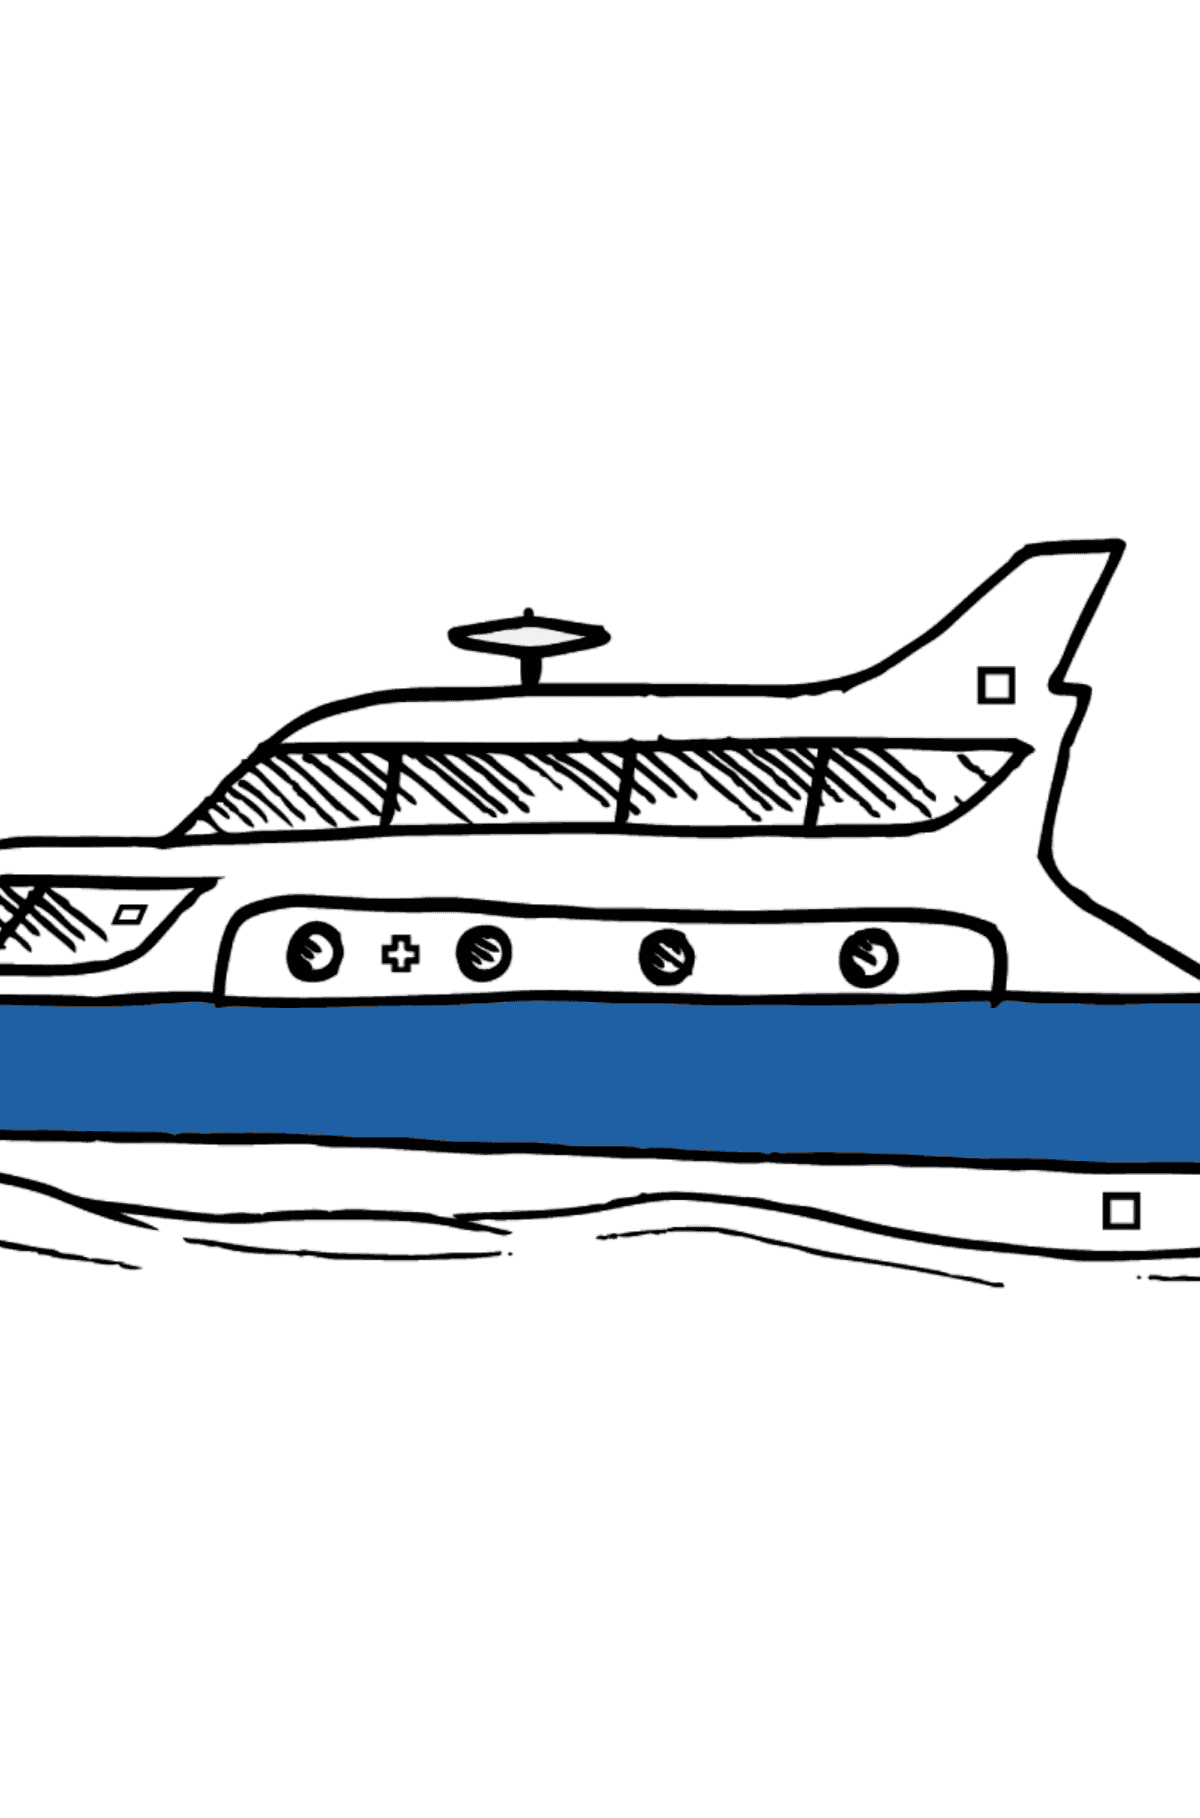 Coloring Page - A Yacht - Coloring by Geometric Shapes for Kids